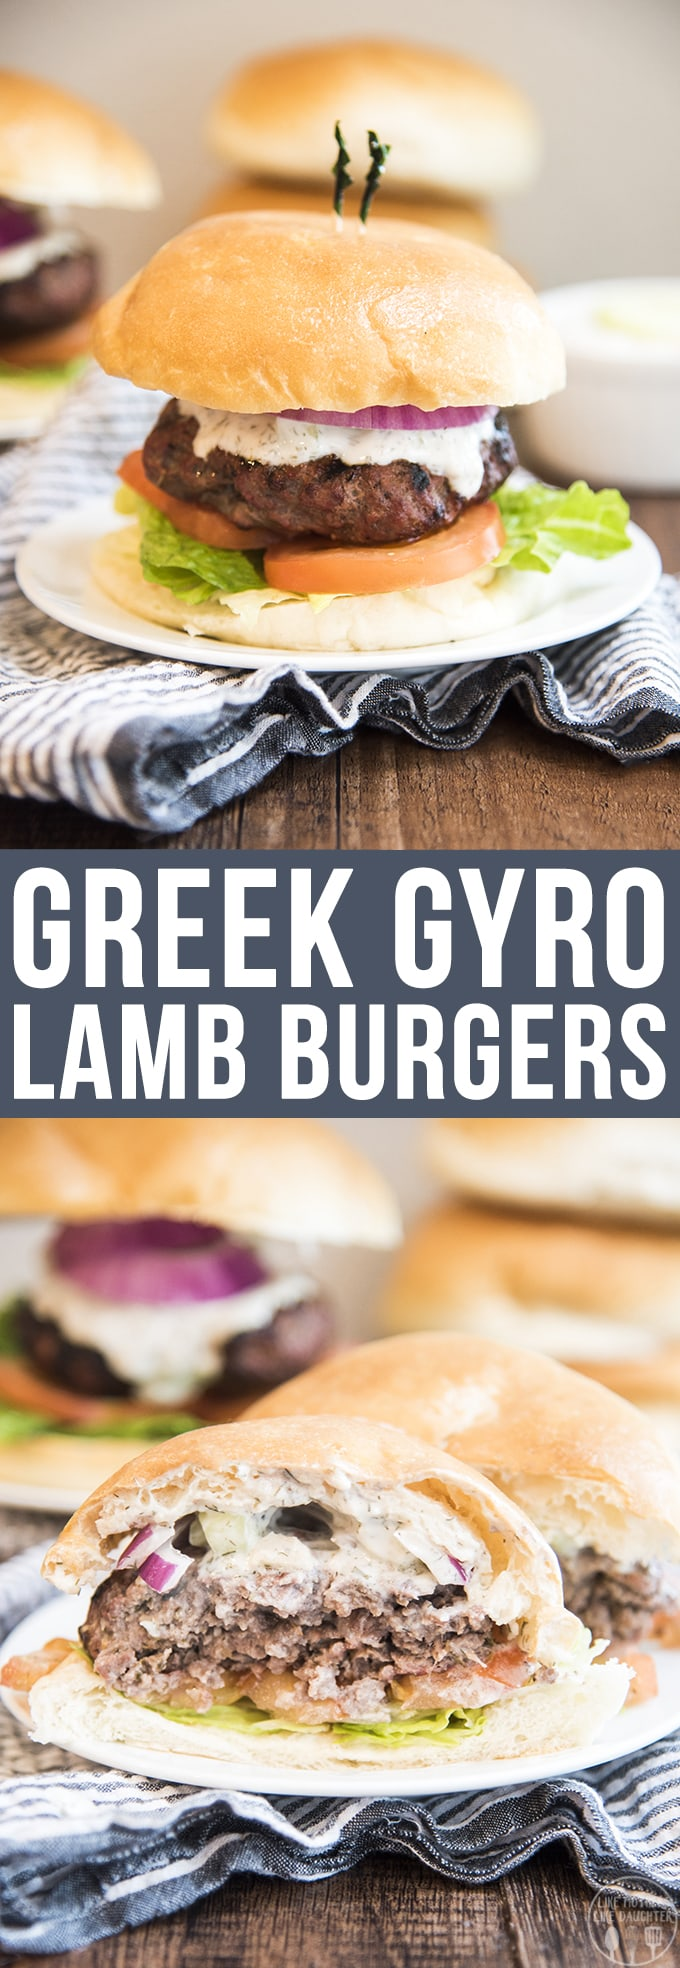 These delicious Greek gyro lamb burgers have the same great flavors of a gyro in burger form. With a perfectly seasoned grilled lamb burger topped with homemade tzatziki sauce.